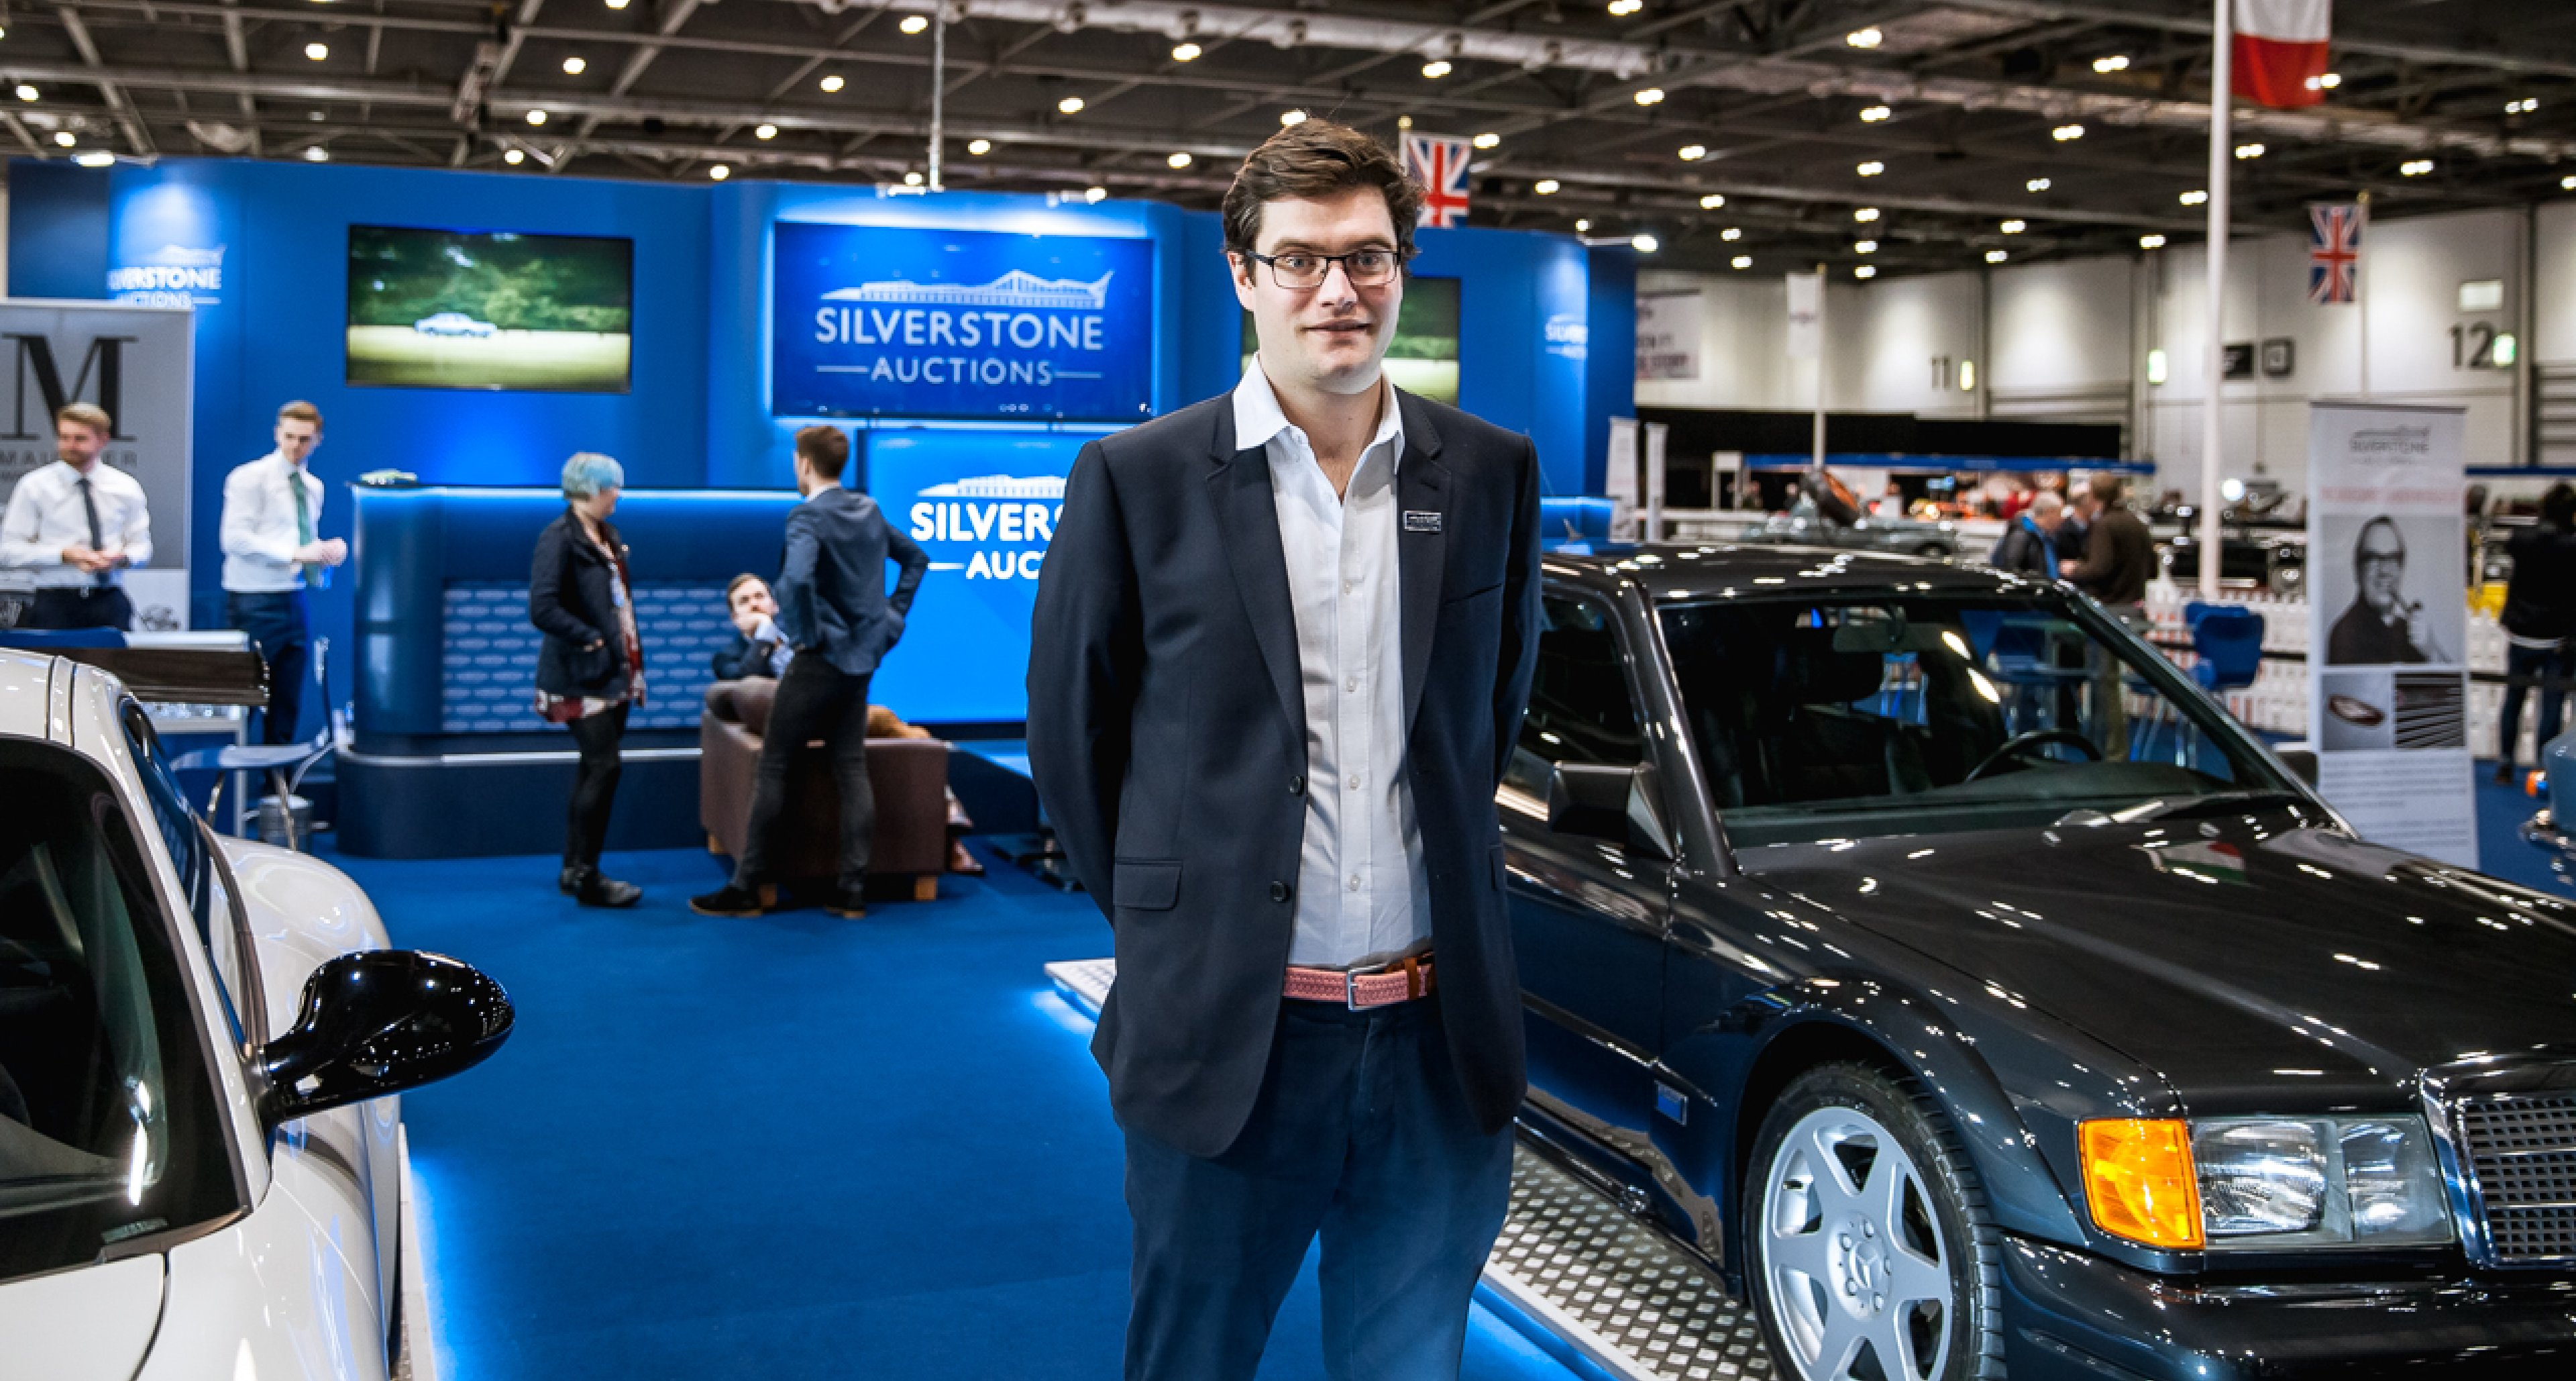 Harry Whale, Operations Manager & Classic Car Specialist at Silverstone Auctions